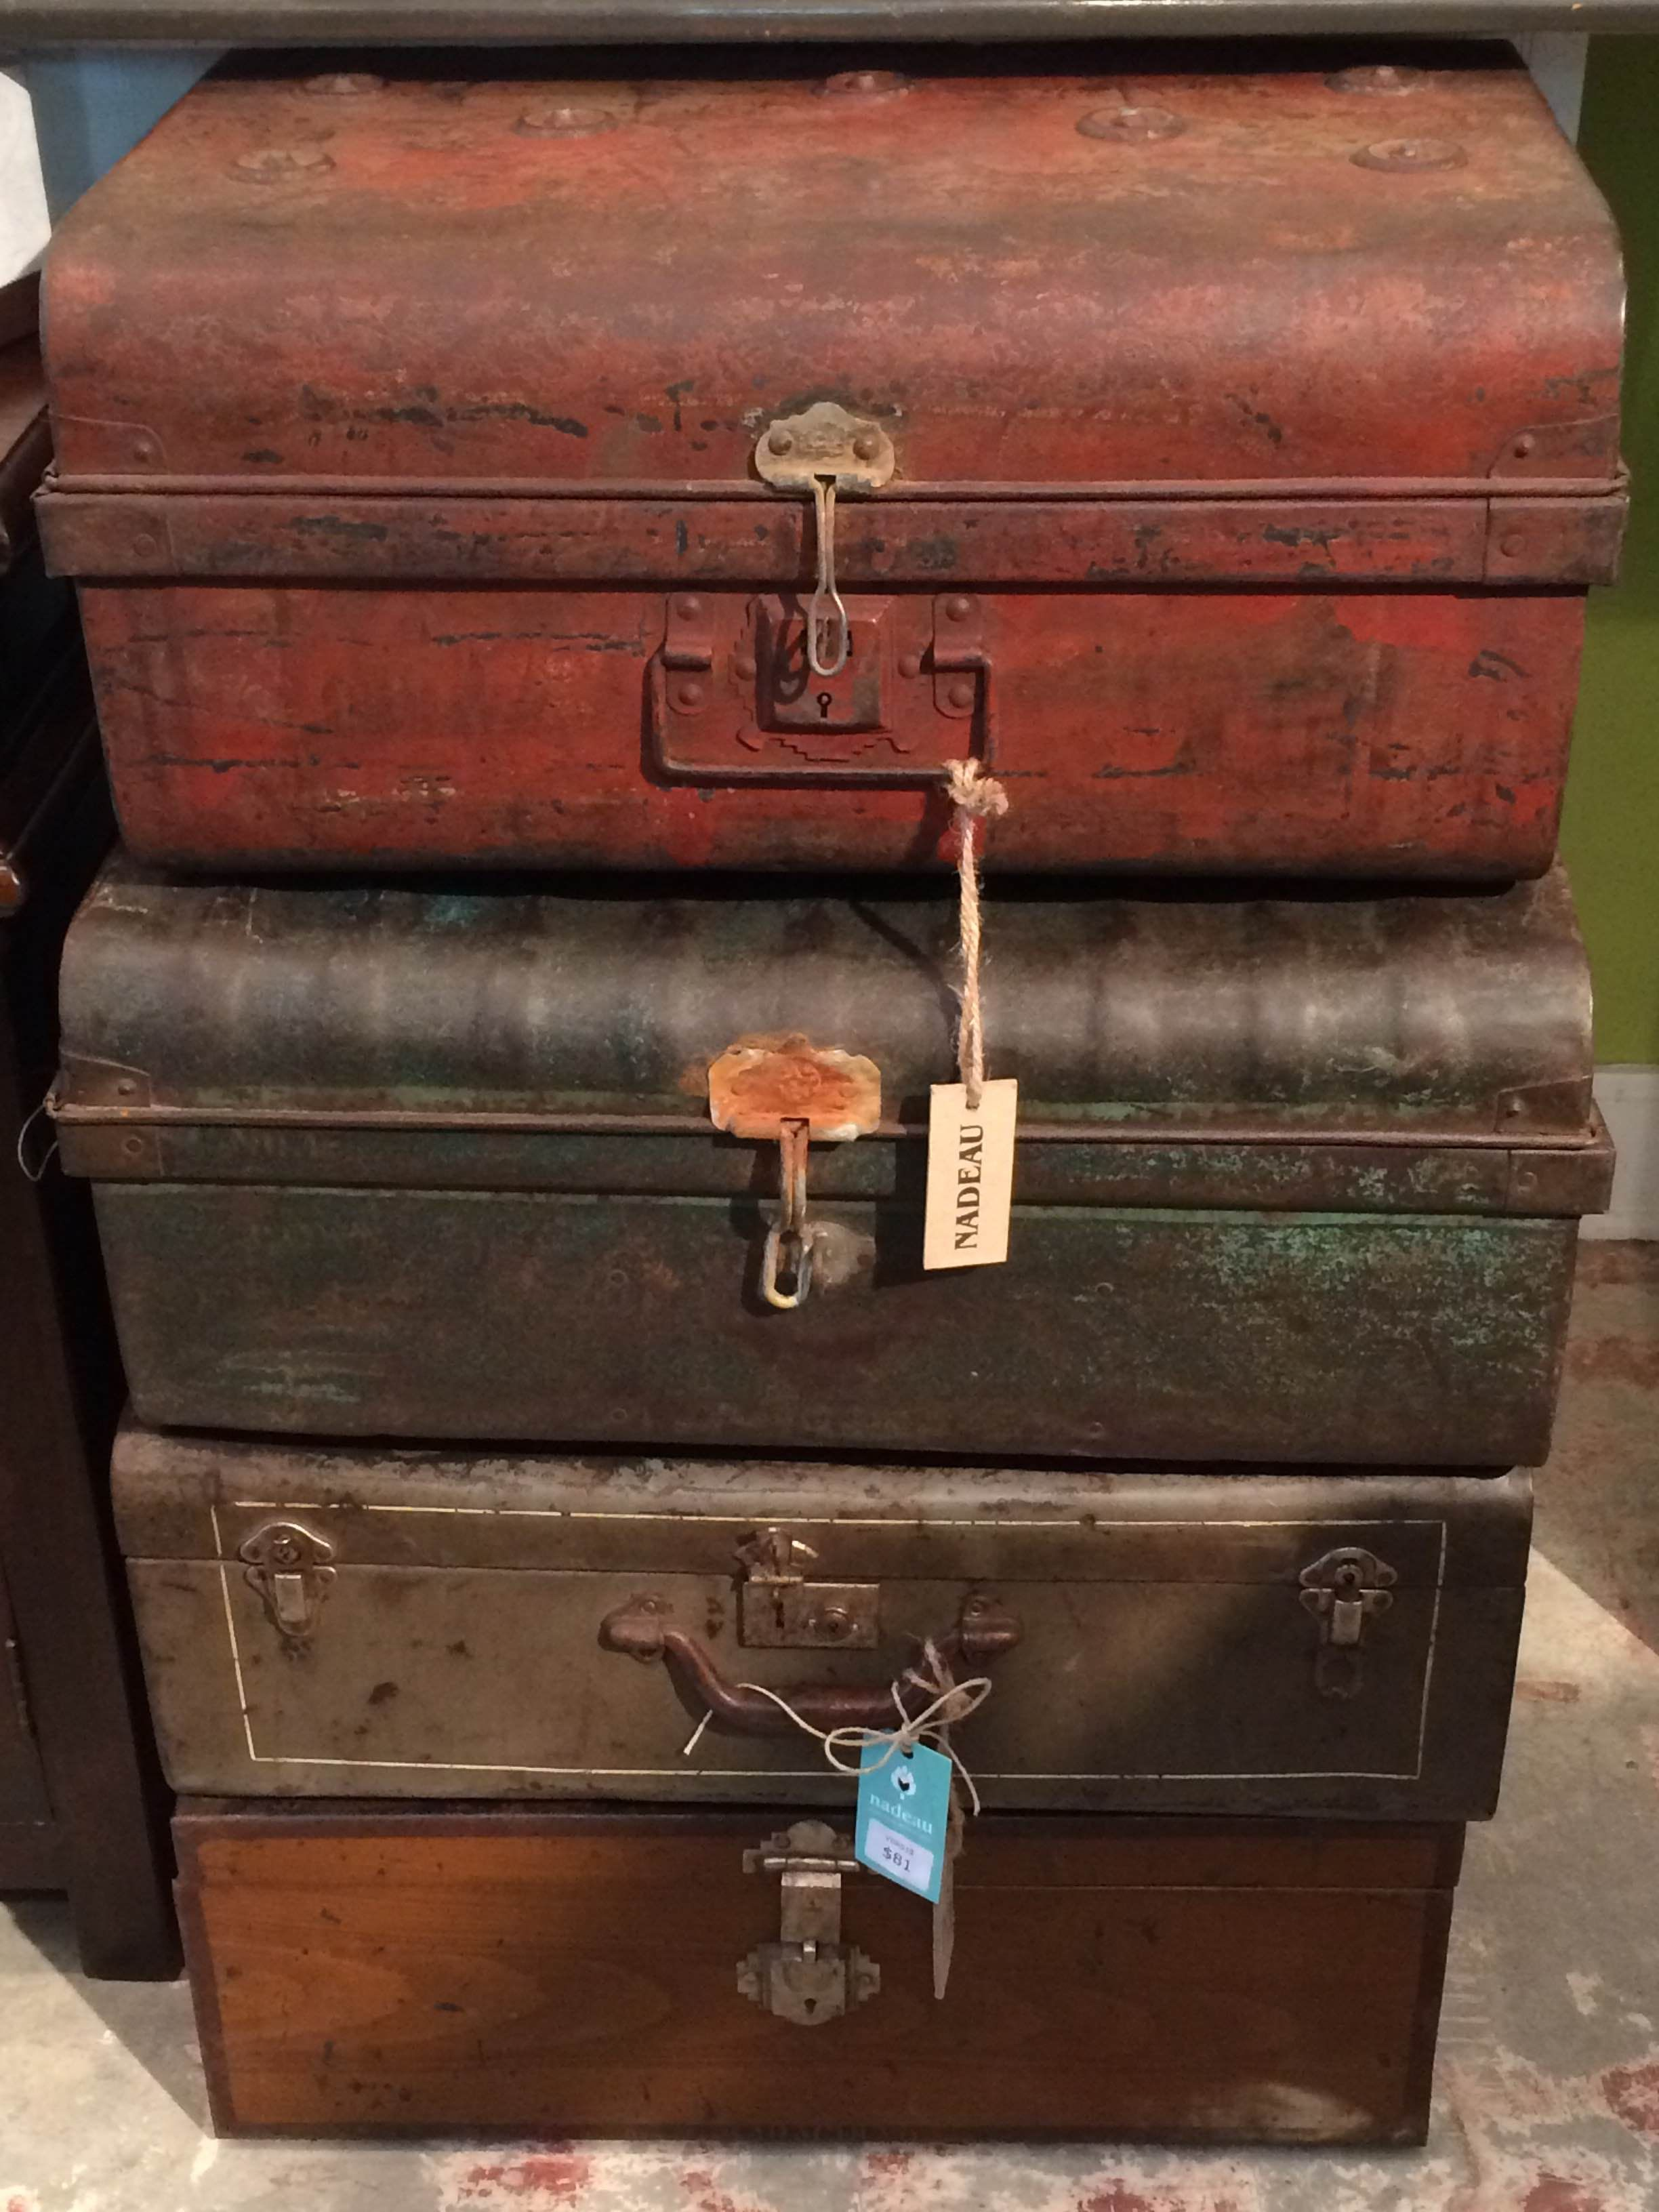 #Vintage #Metal #Suitcases at #Nadeau #NOLA $81 each and one-of-a-kind